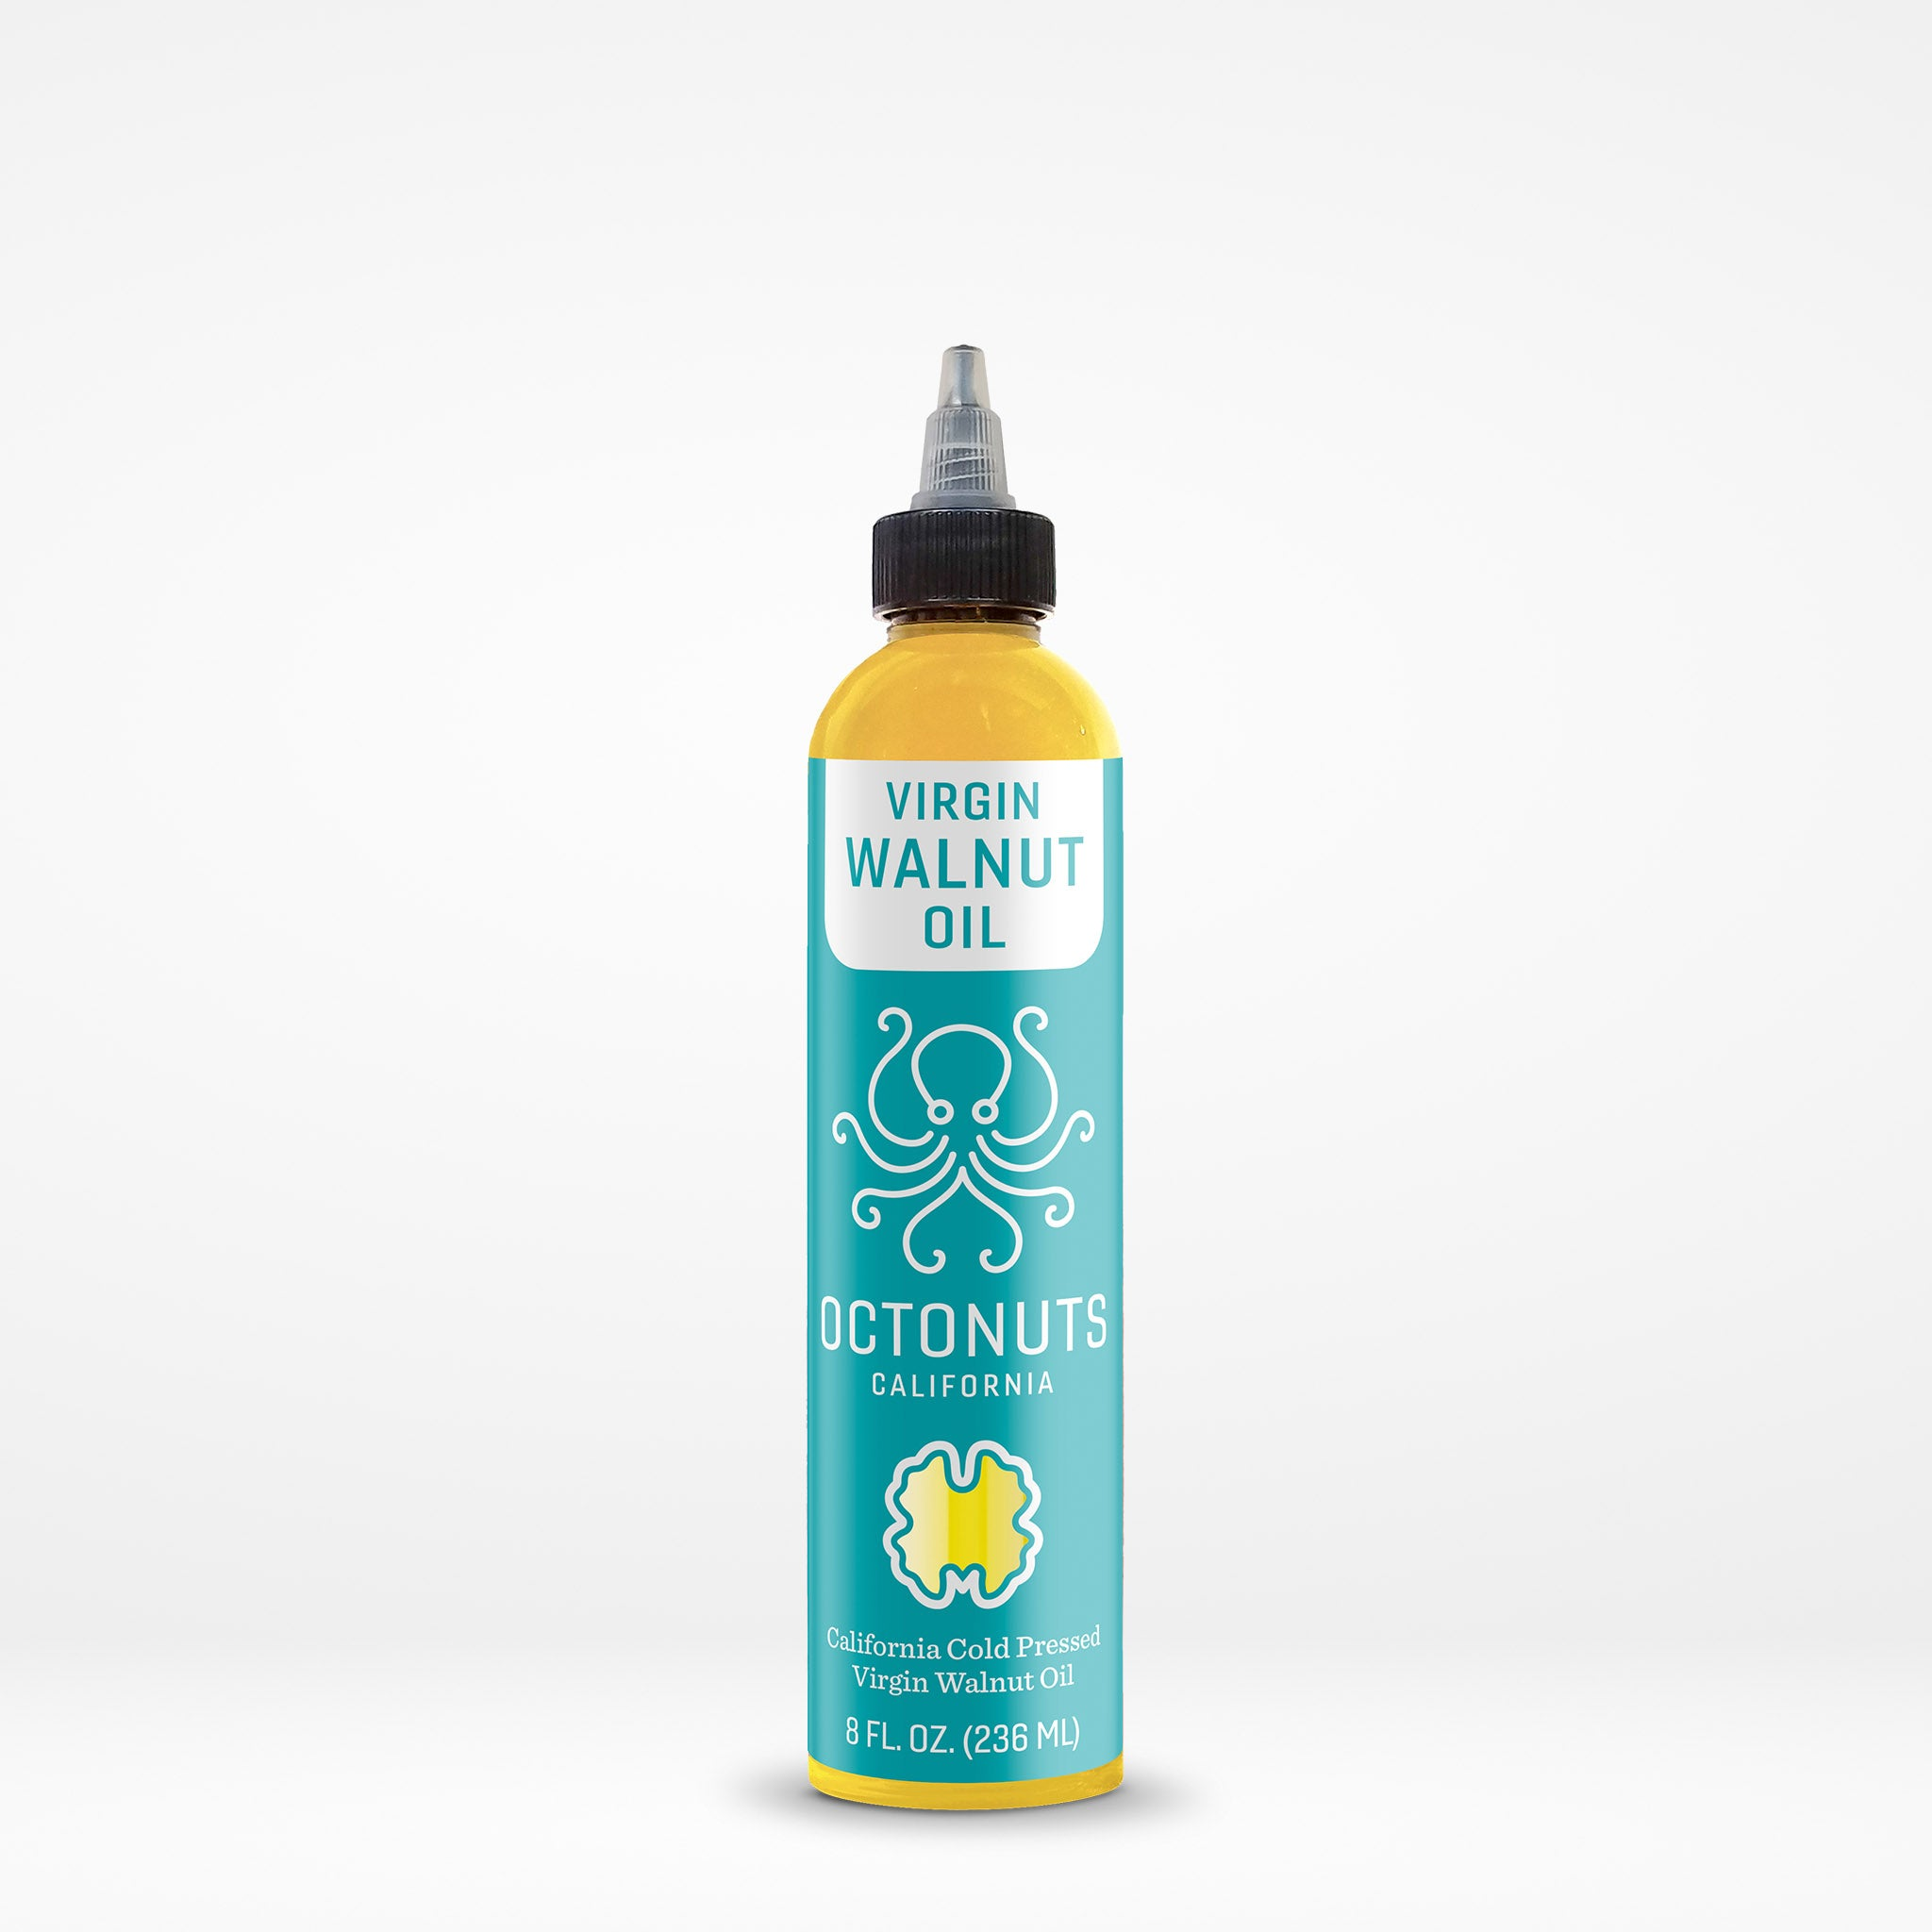 California Cold Pressed Virgin Walnut Oil